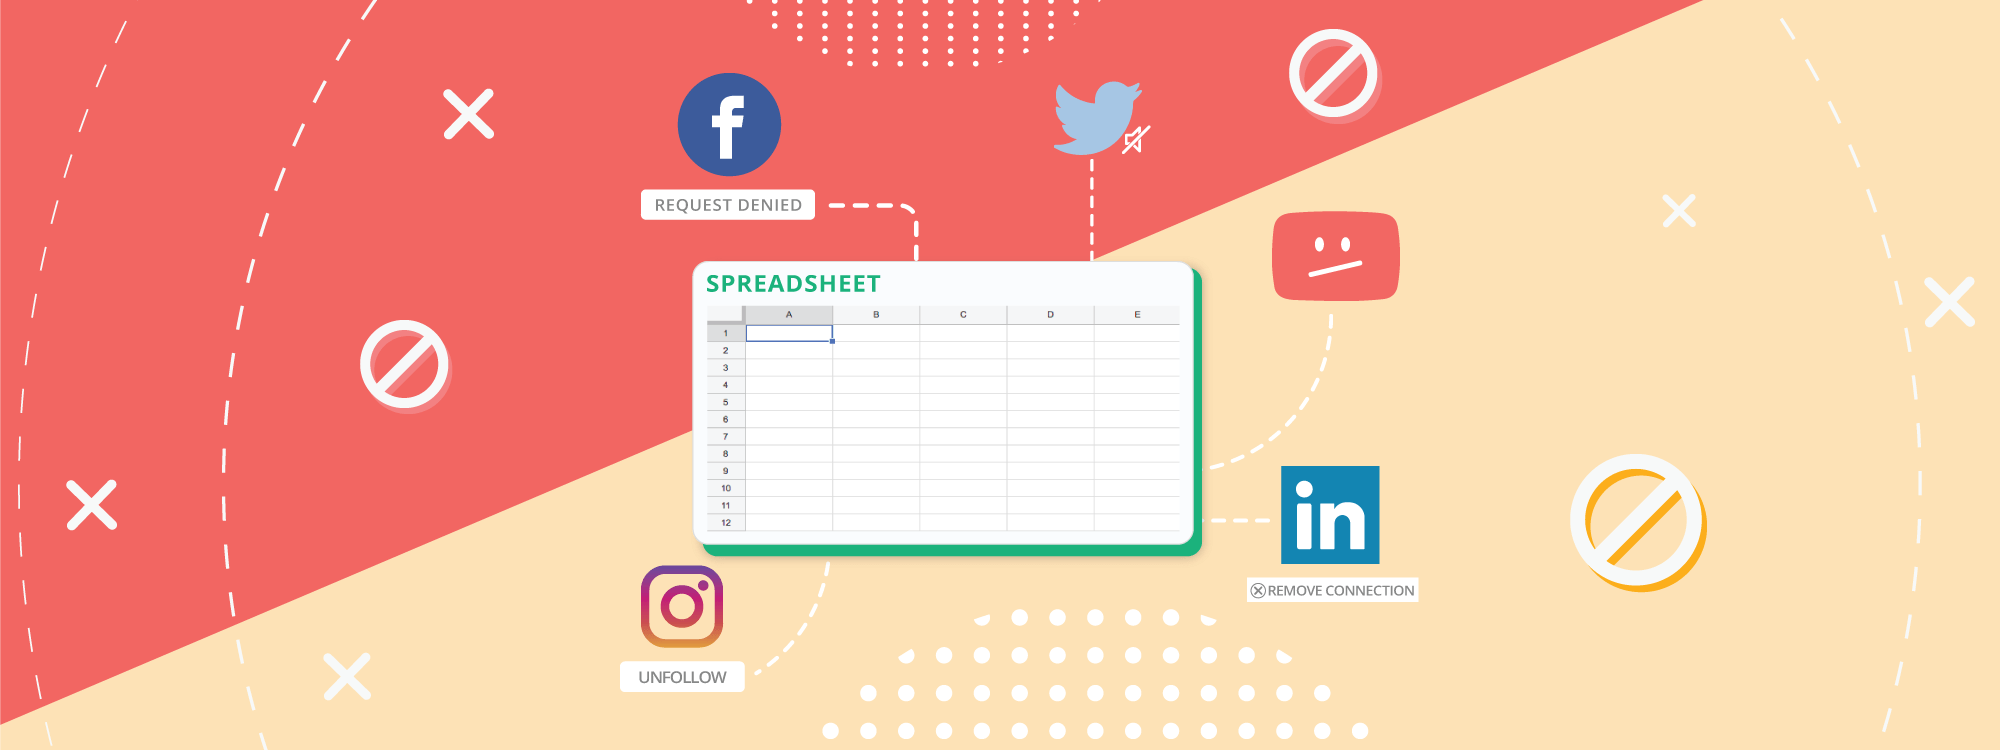 So, what's wrong with using spreadsheets to design social media marketing campaigns?